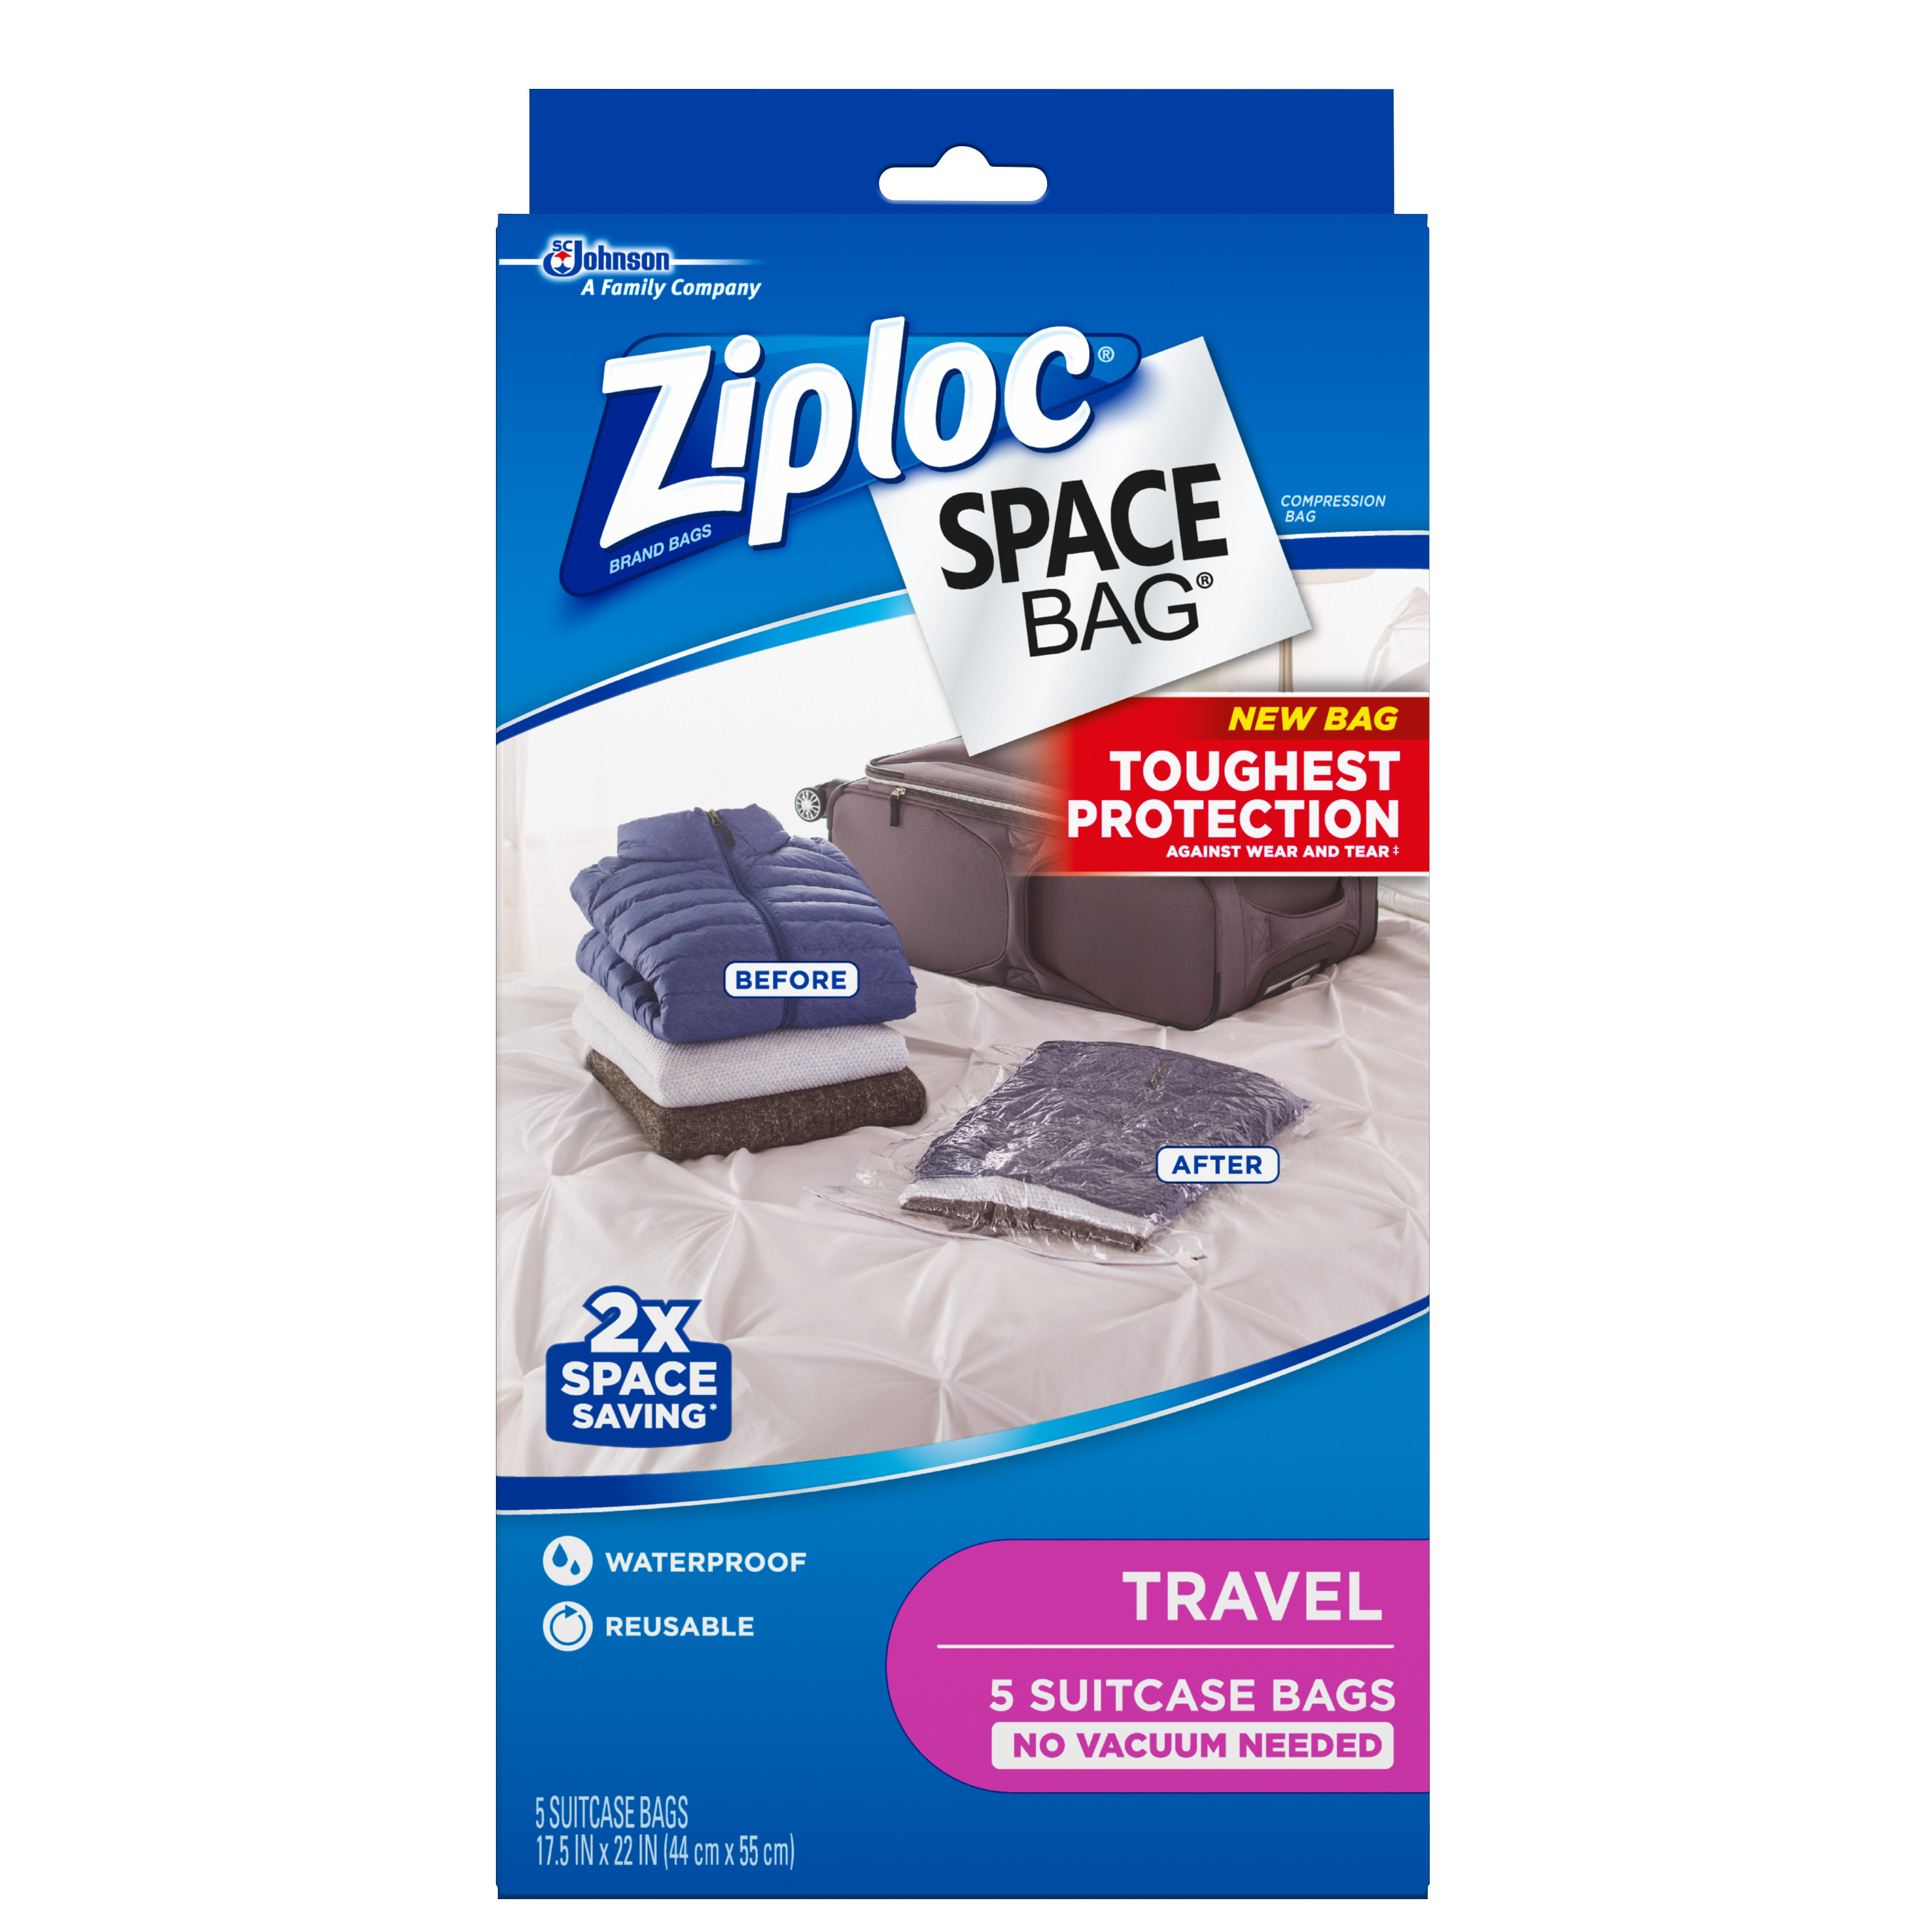 Ziploc Space Bag Travel Bag 5 count